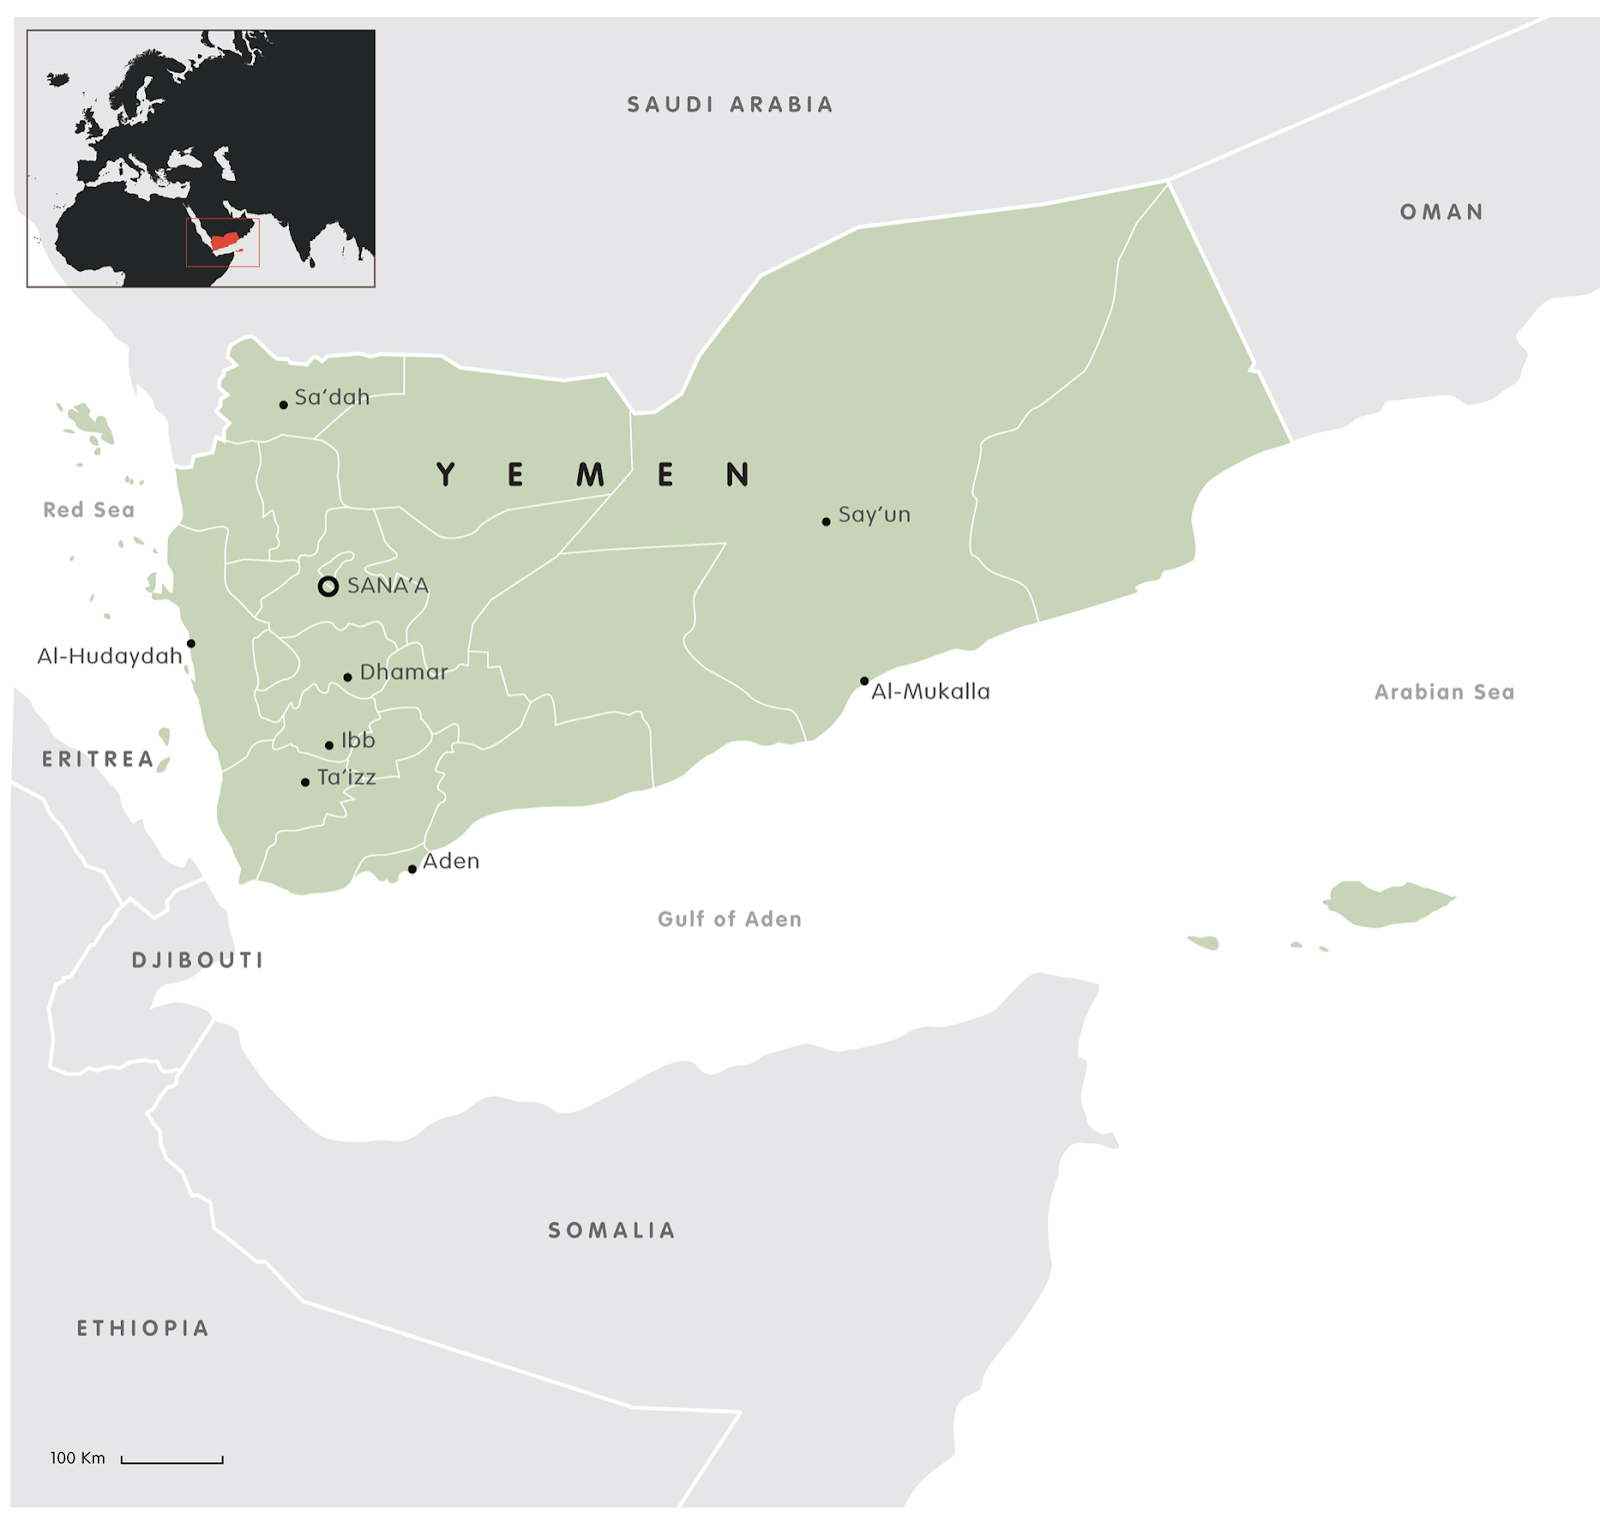 as you can see yemen is located on the heel of the arabian peninsula with borders shared with oman to the east and saudi arabia to the north